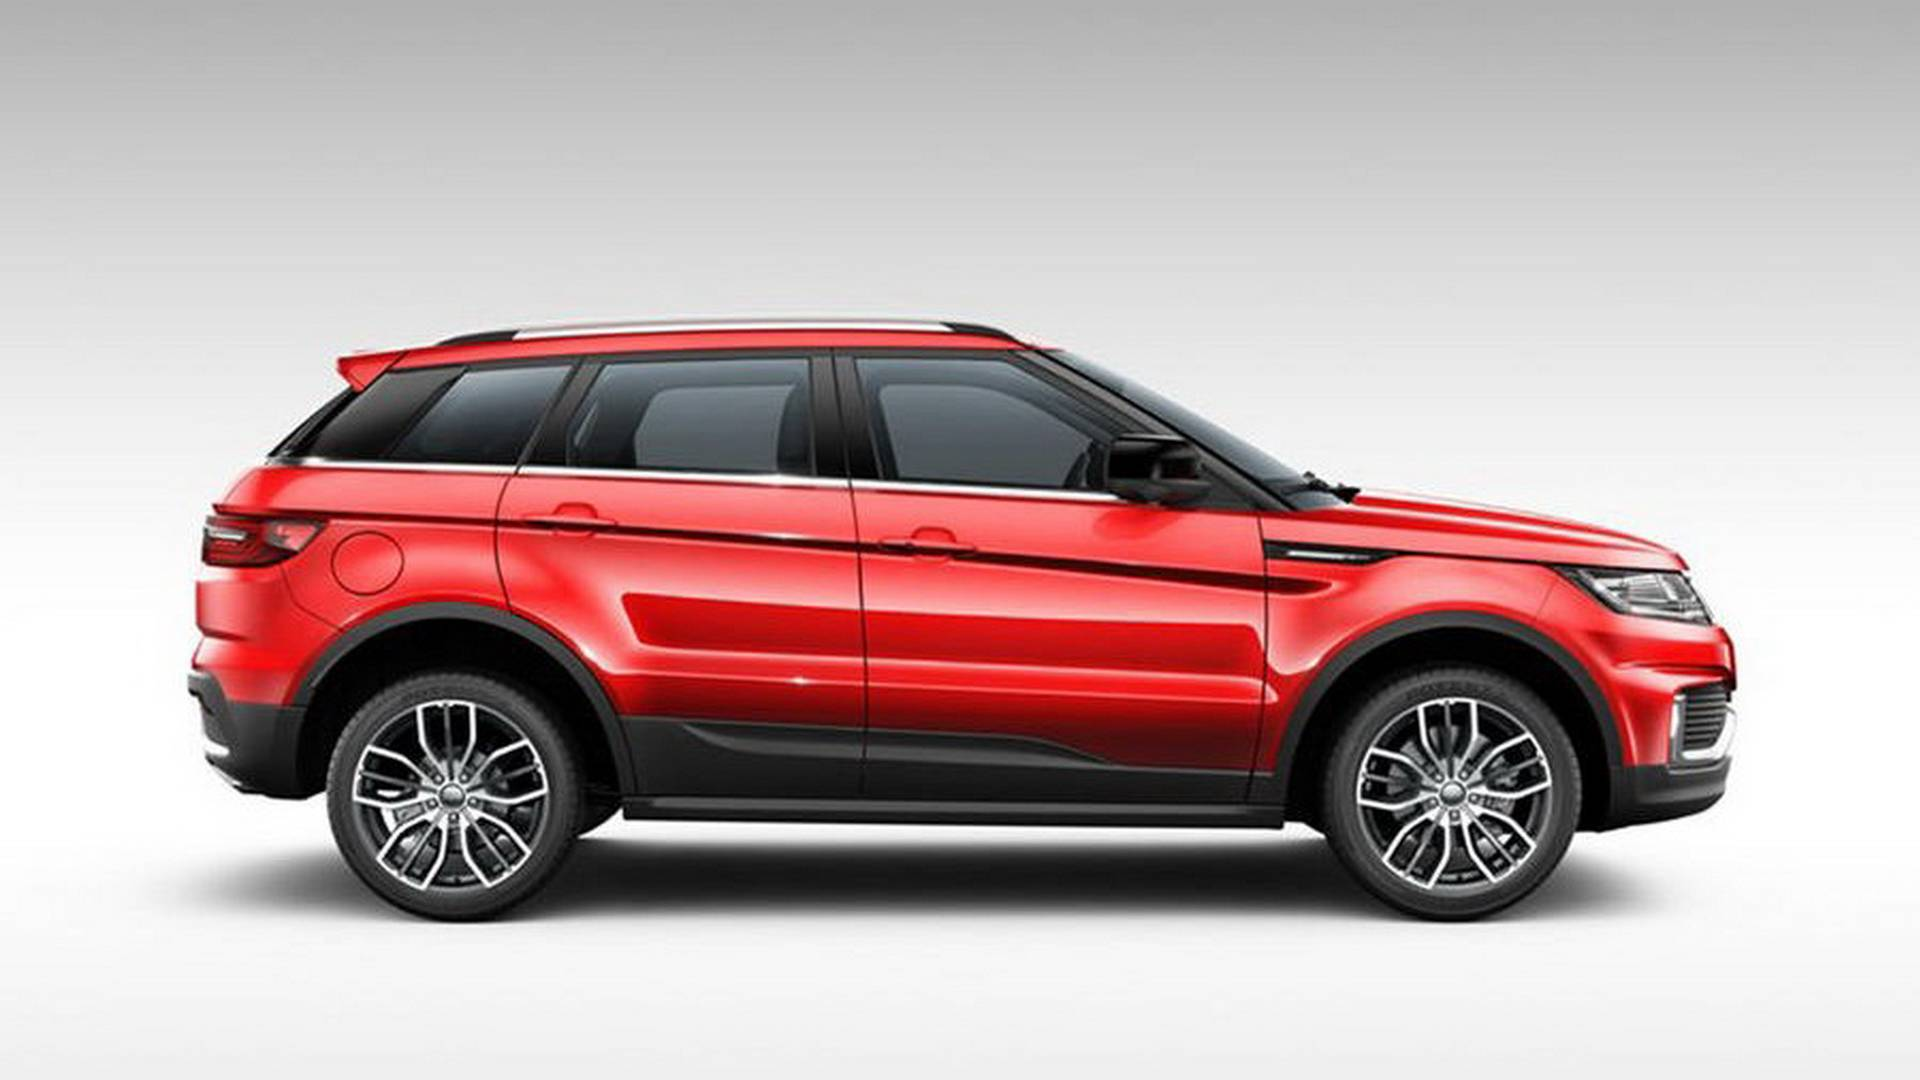 Chinese Clone Of Range Rover Evoque Gets A Facelift Looks